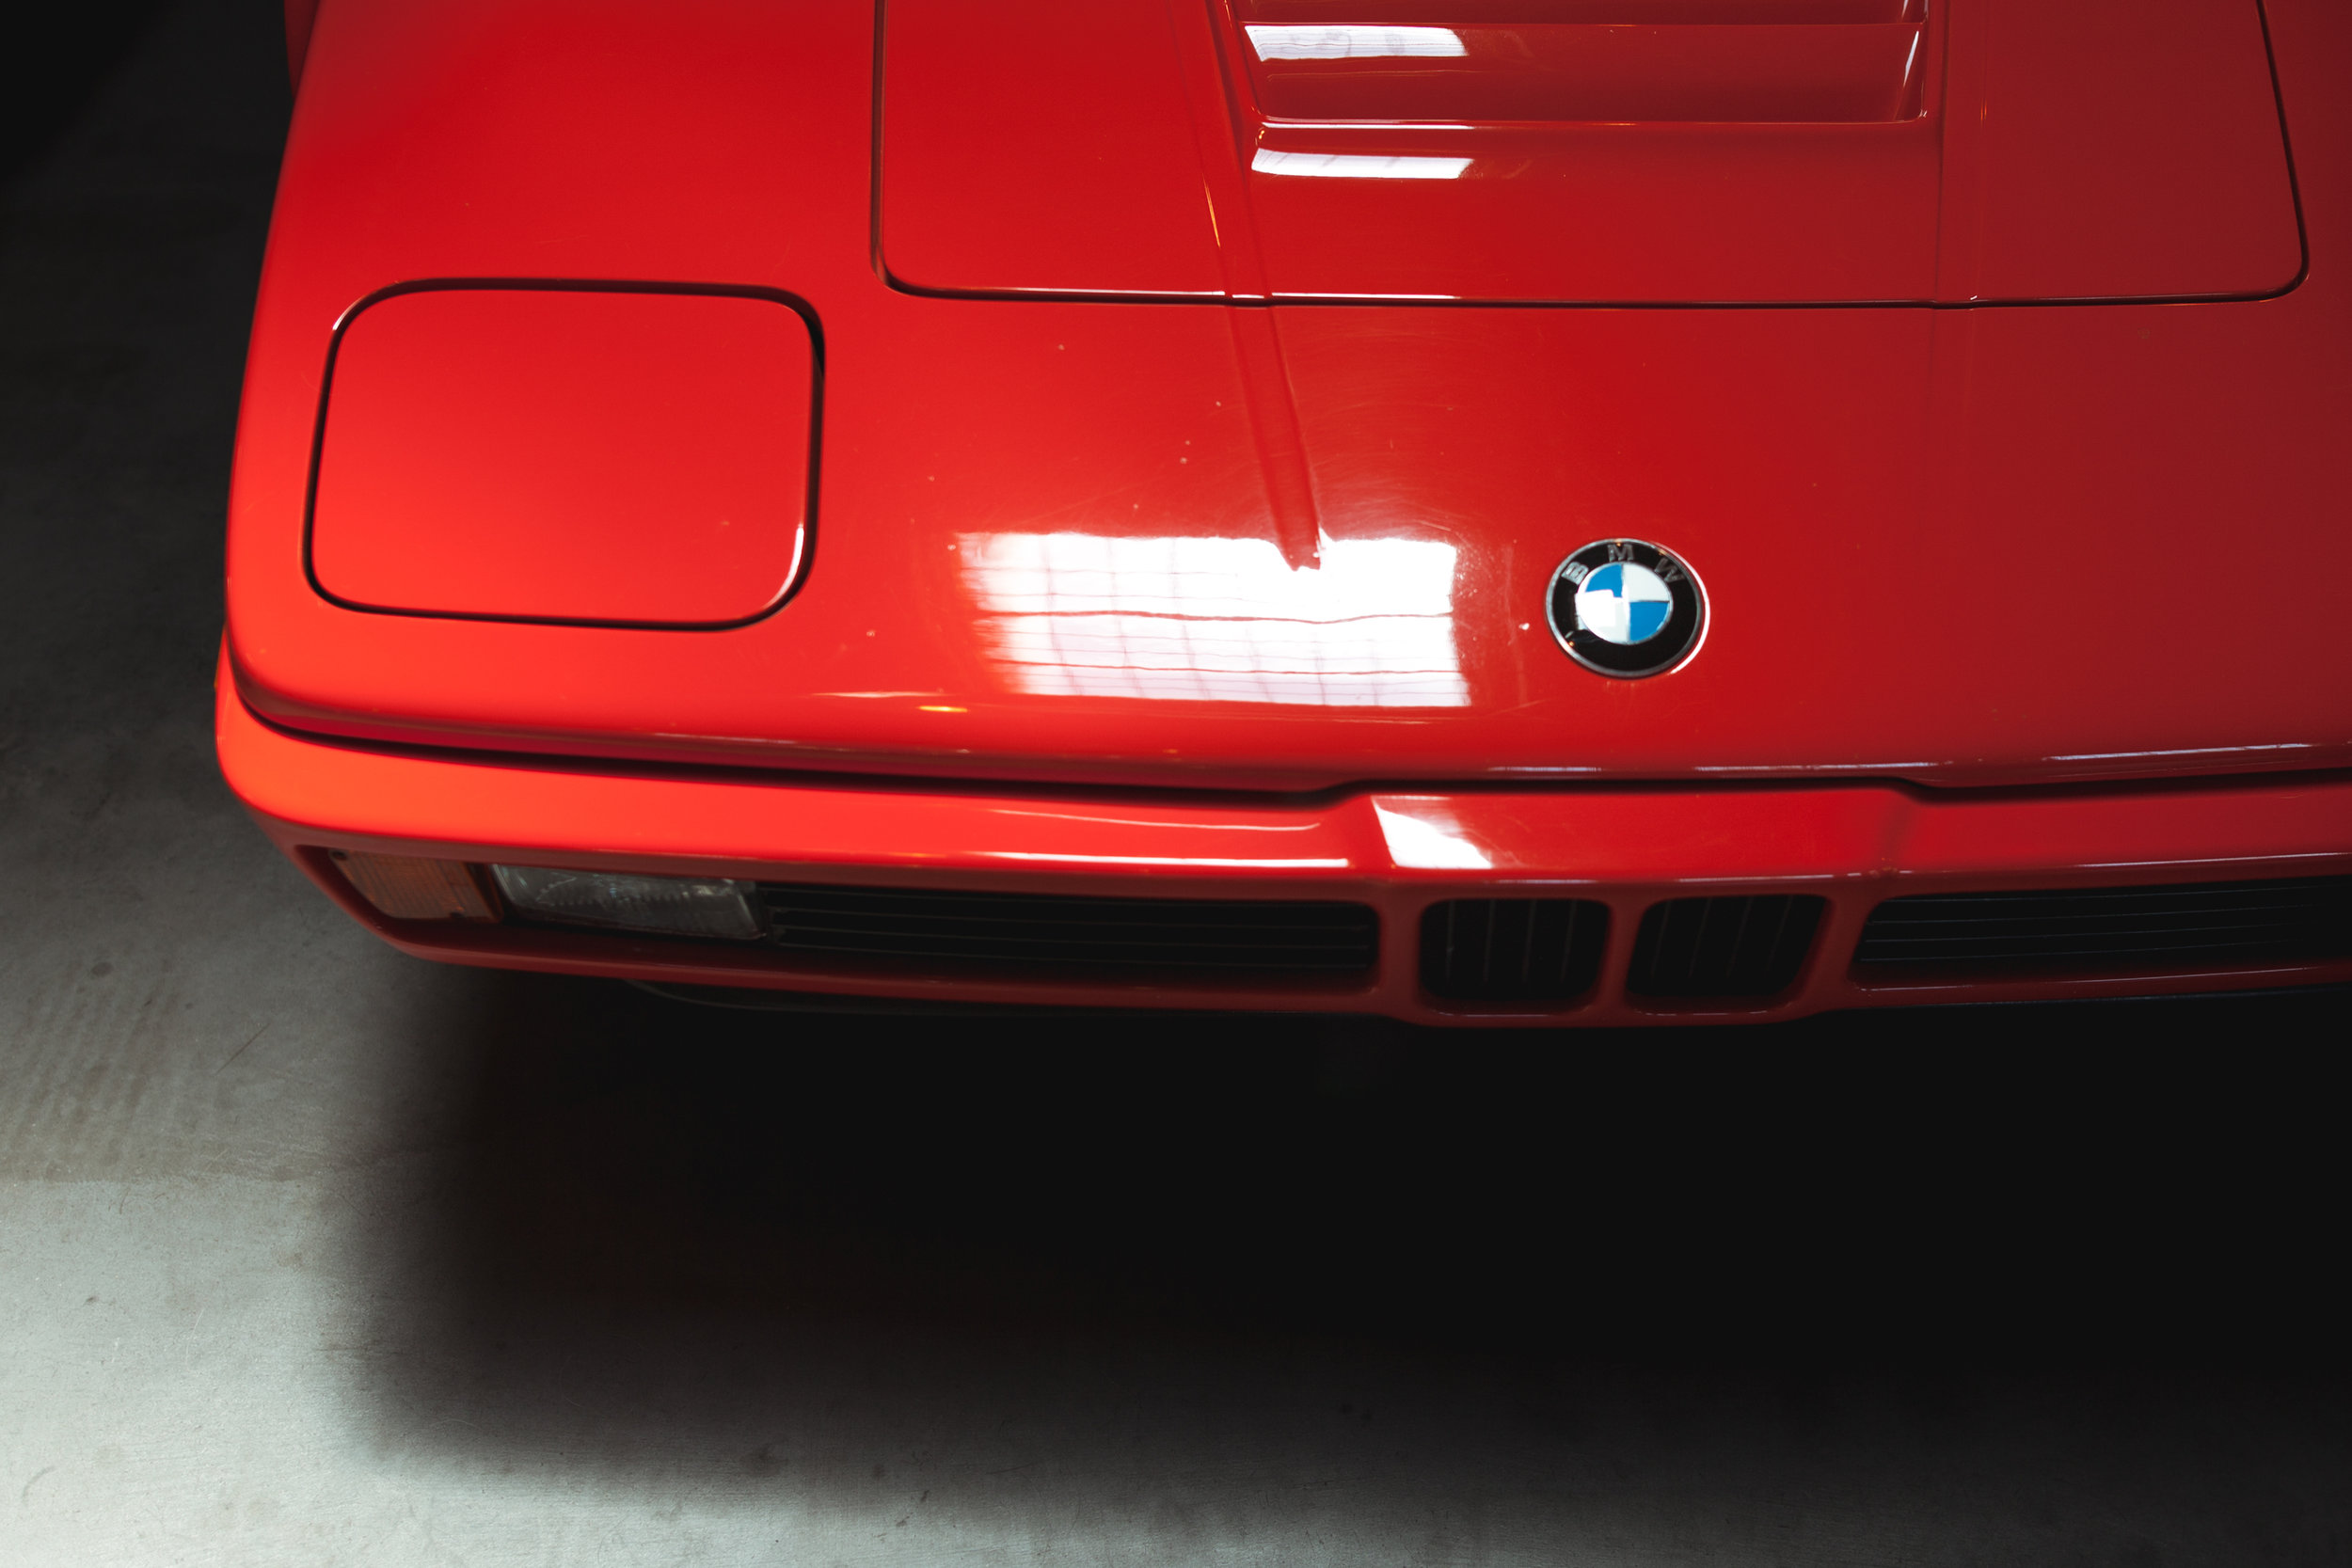 1980 BMW M1 at Fantasy Junction, Emeryville, CA